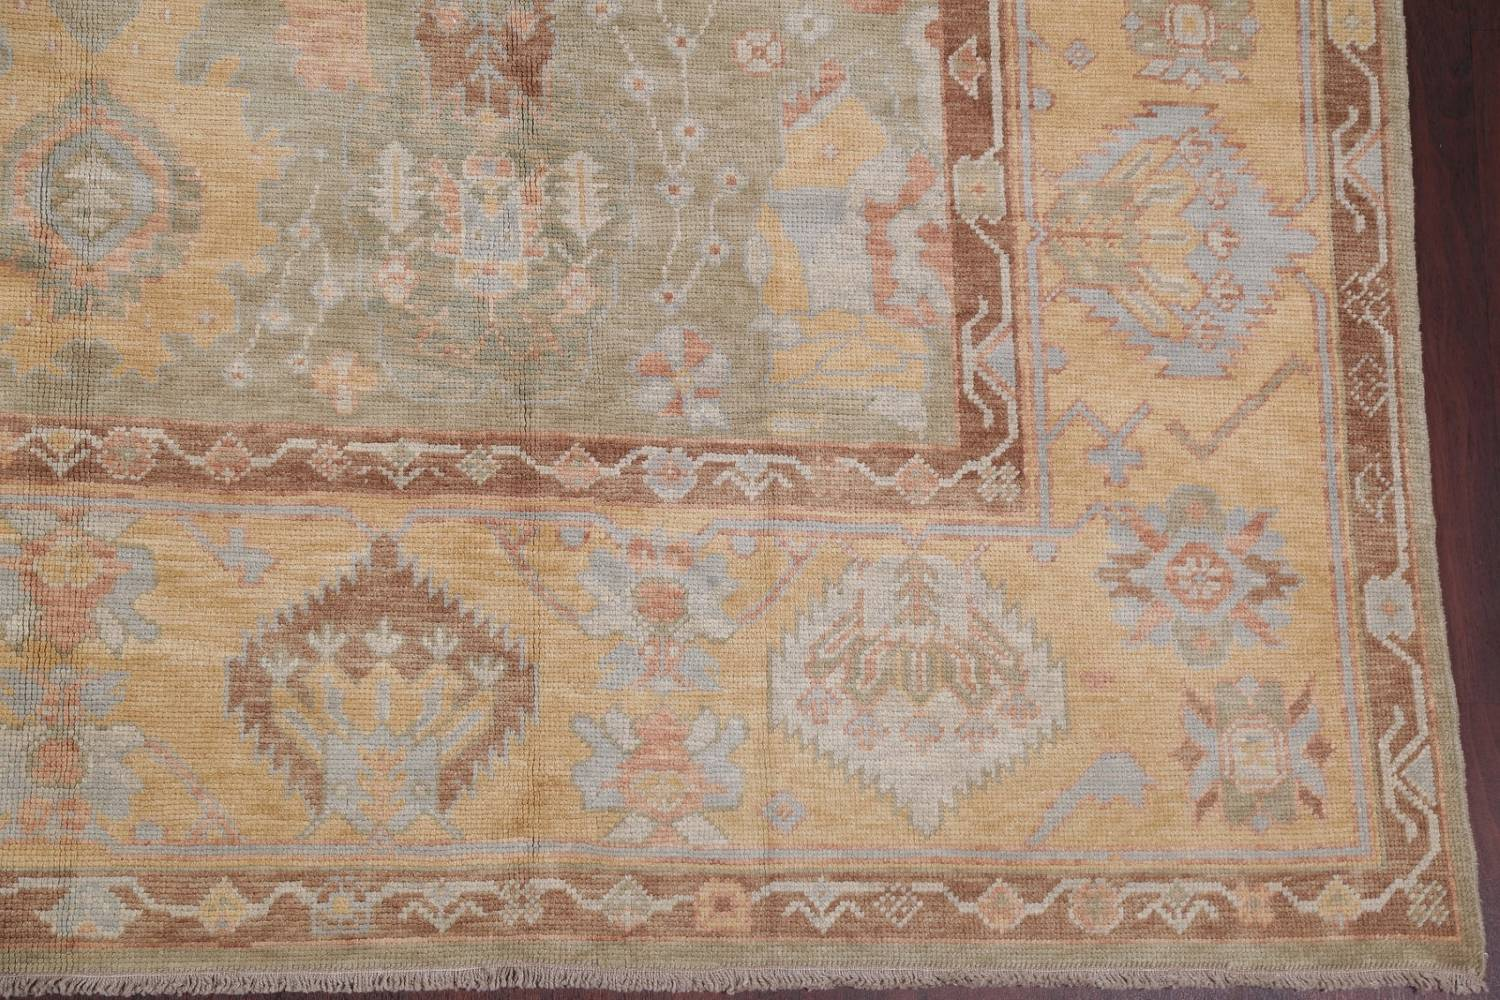 Vegetable Dye Muted Green Oushak Turkish Hand-Knotted Area Rug 9x12 image 6